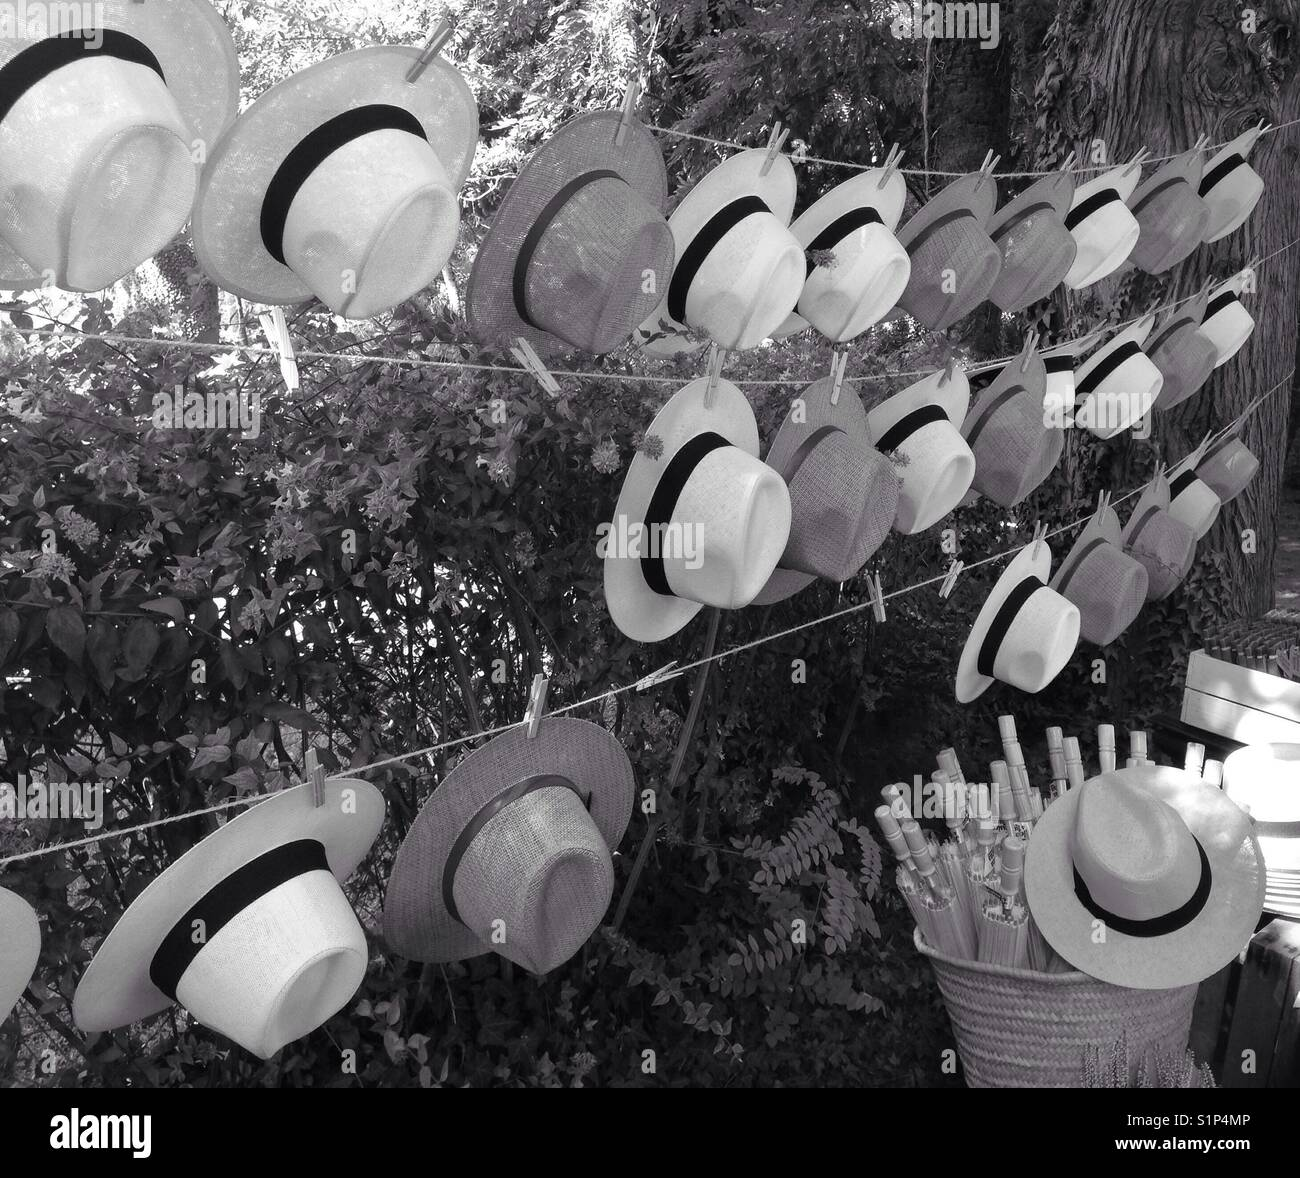 Panama hats hung in a line - Stock Image